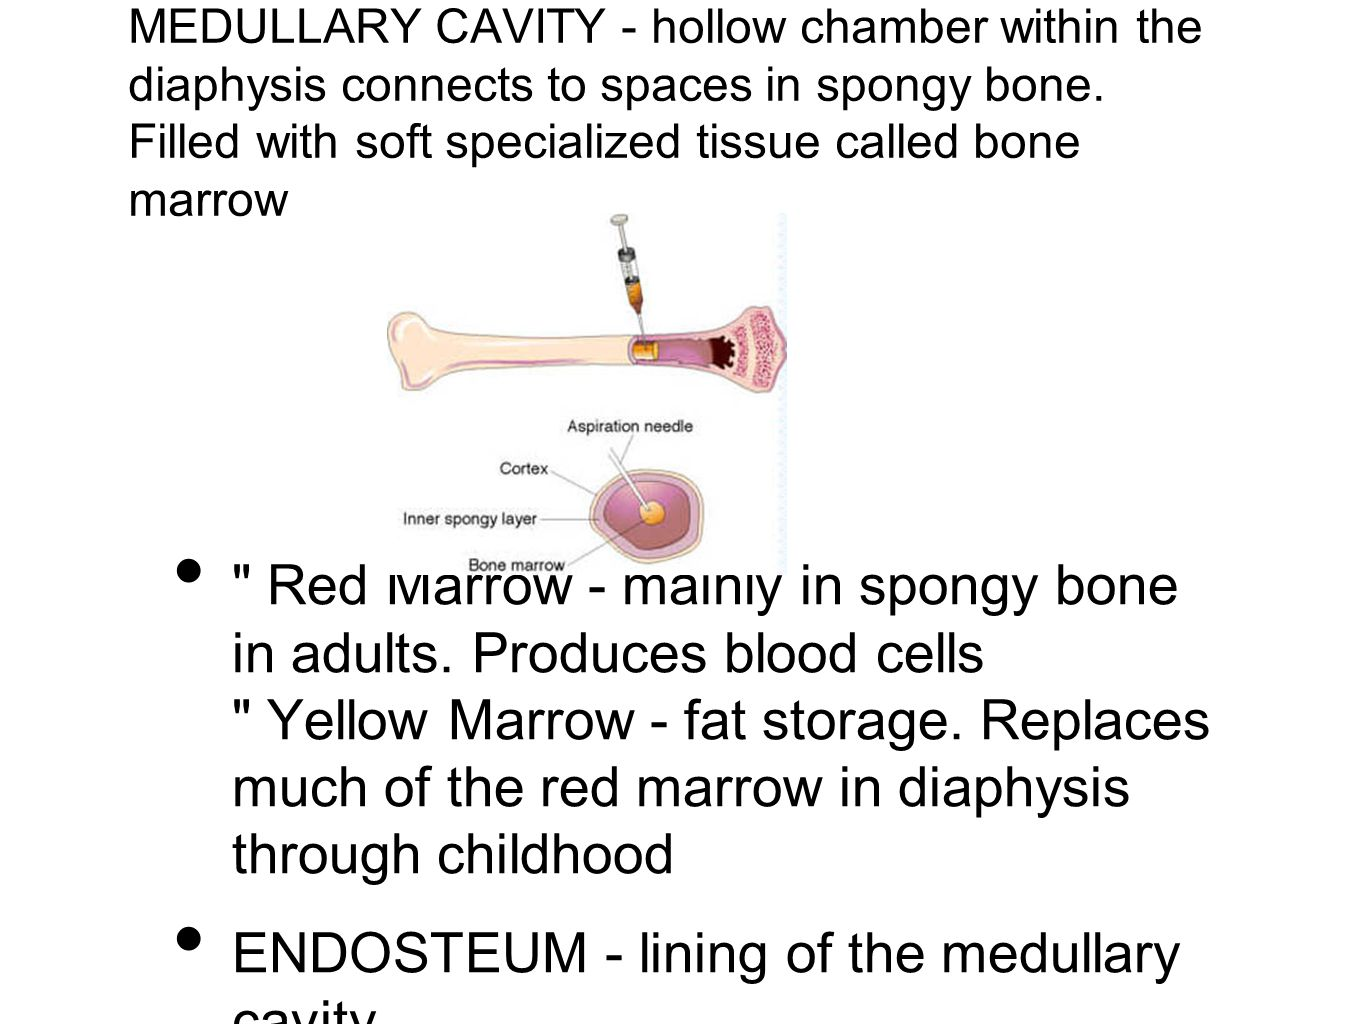 ENDOSTEUM - lining of the medullary cavity